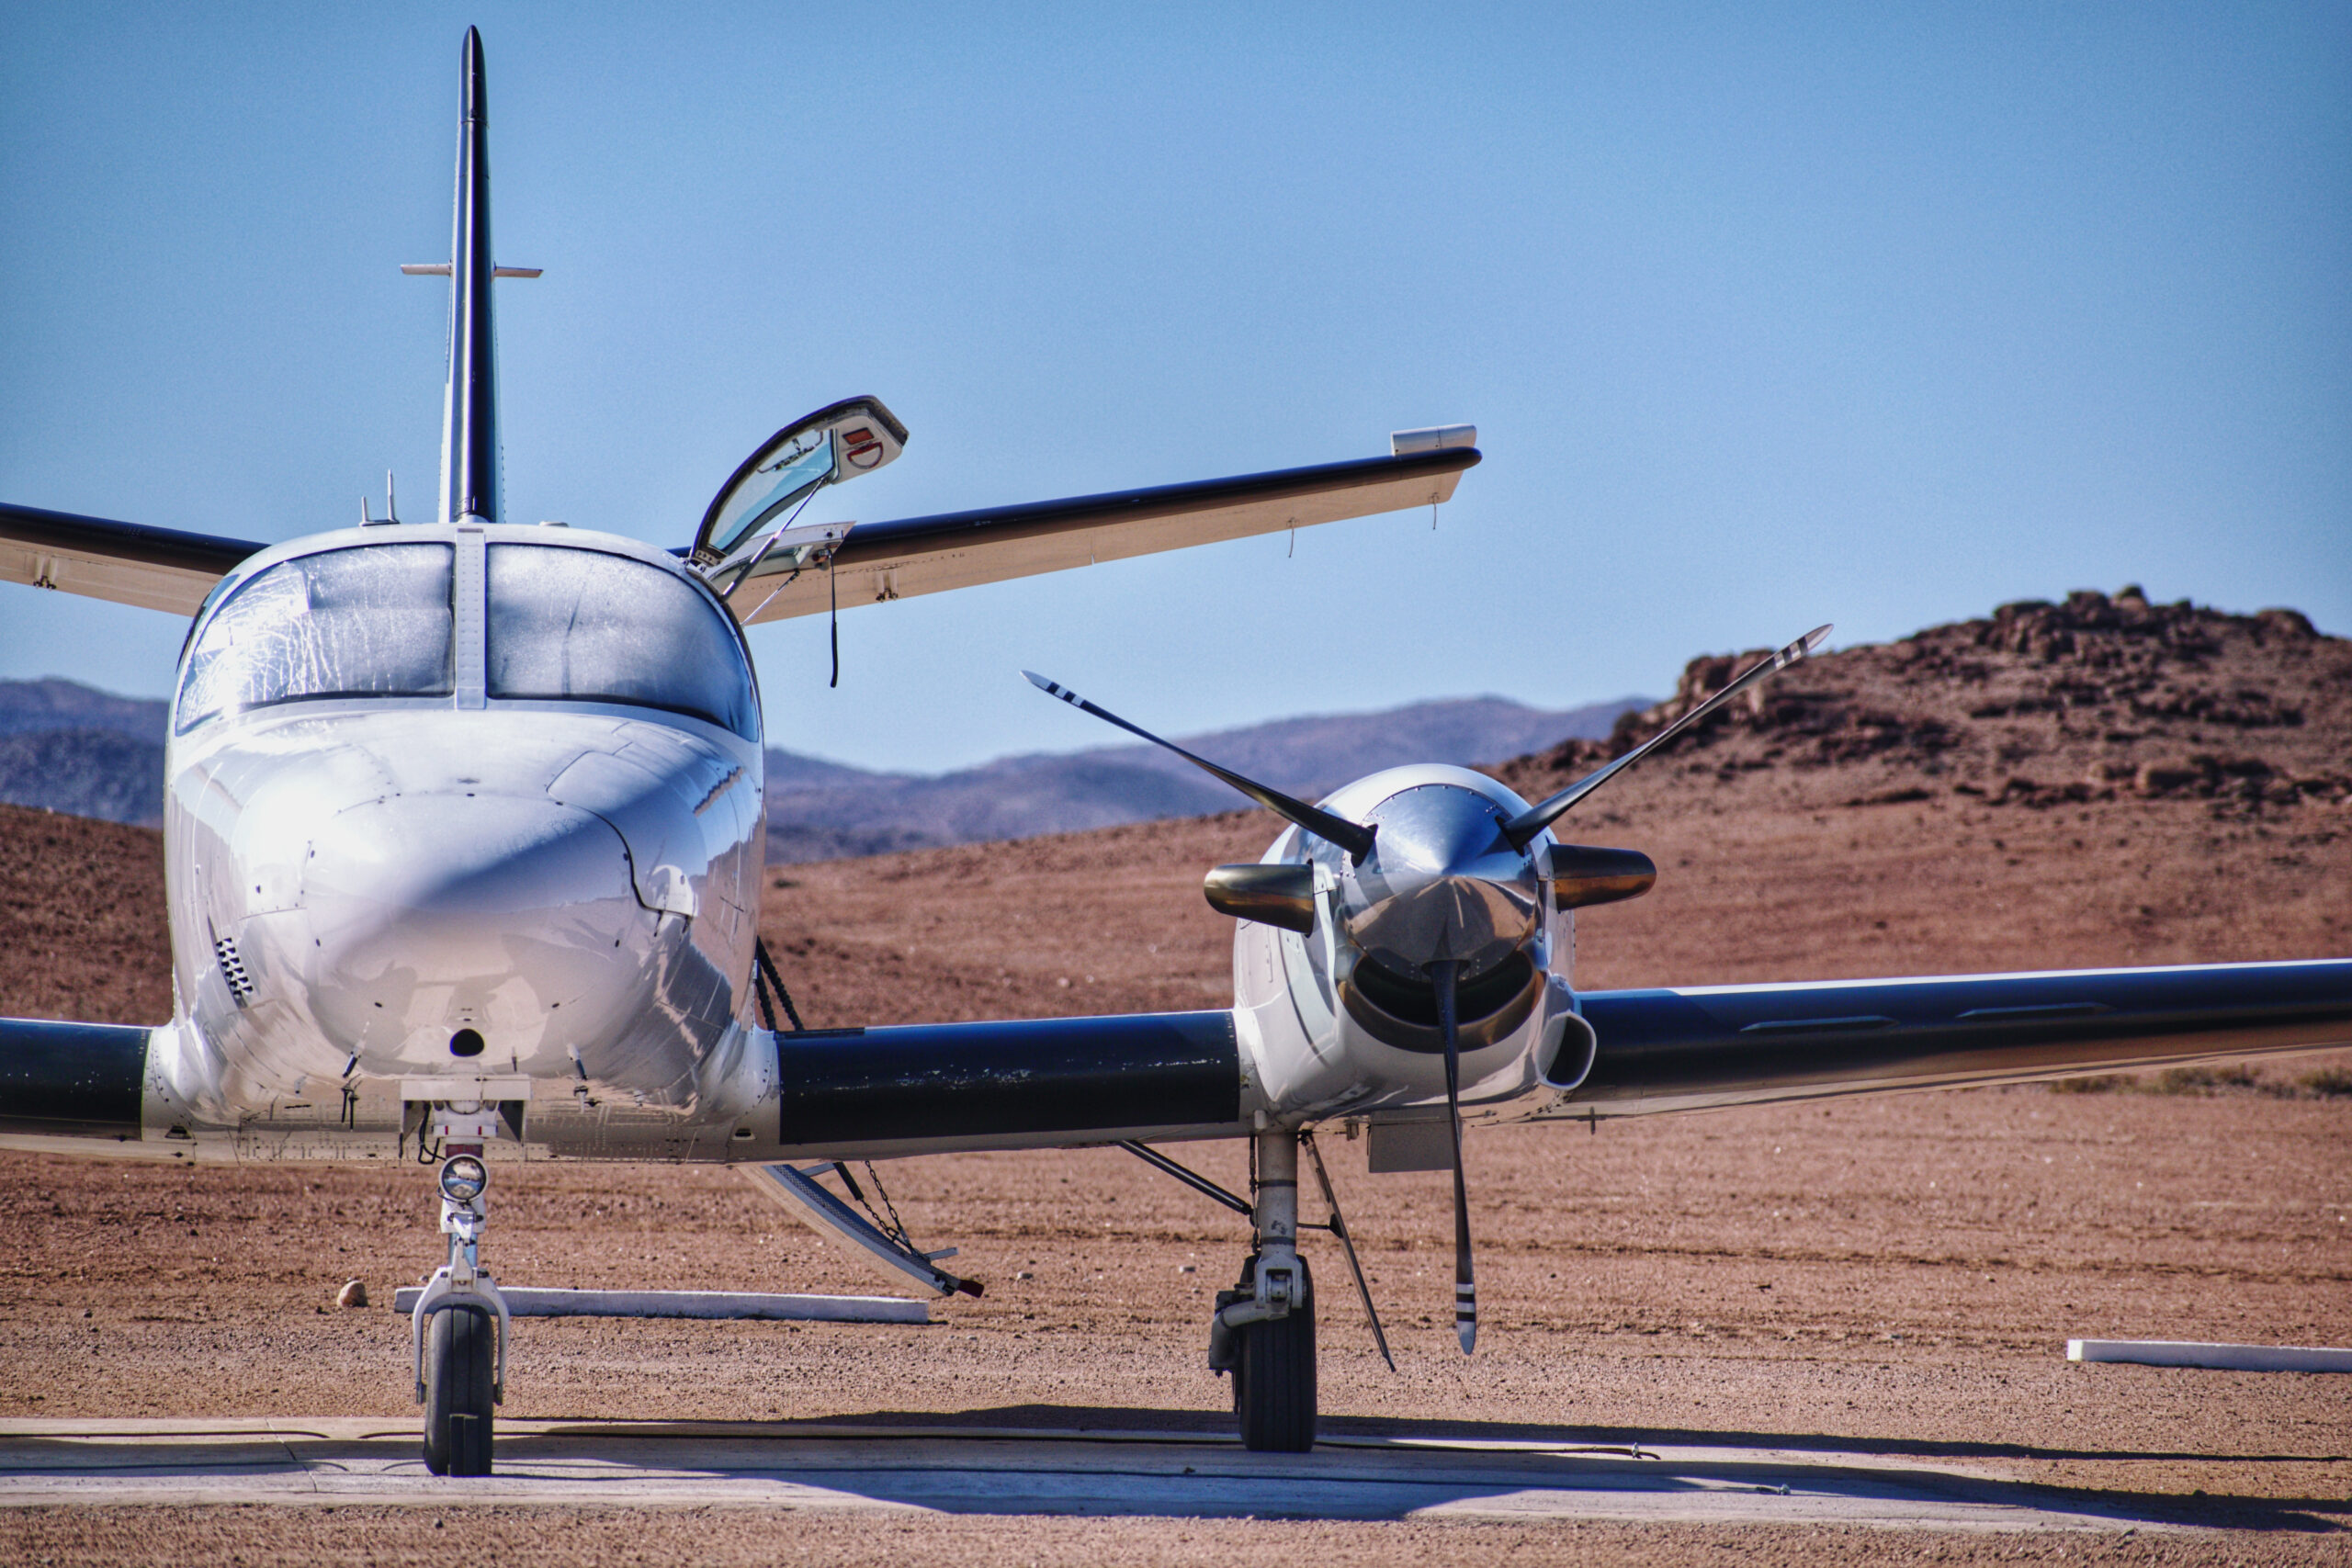 Front,View,Of,An,Aircraft,Parked,With,Desert,Background